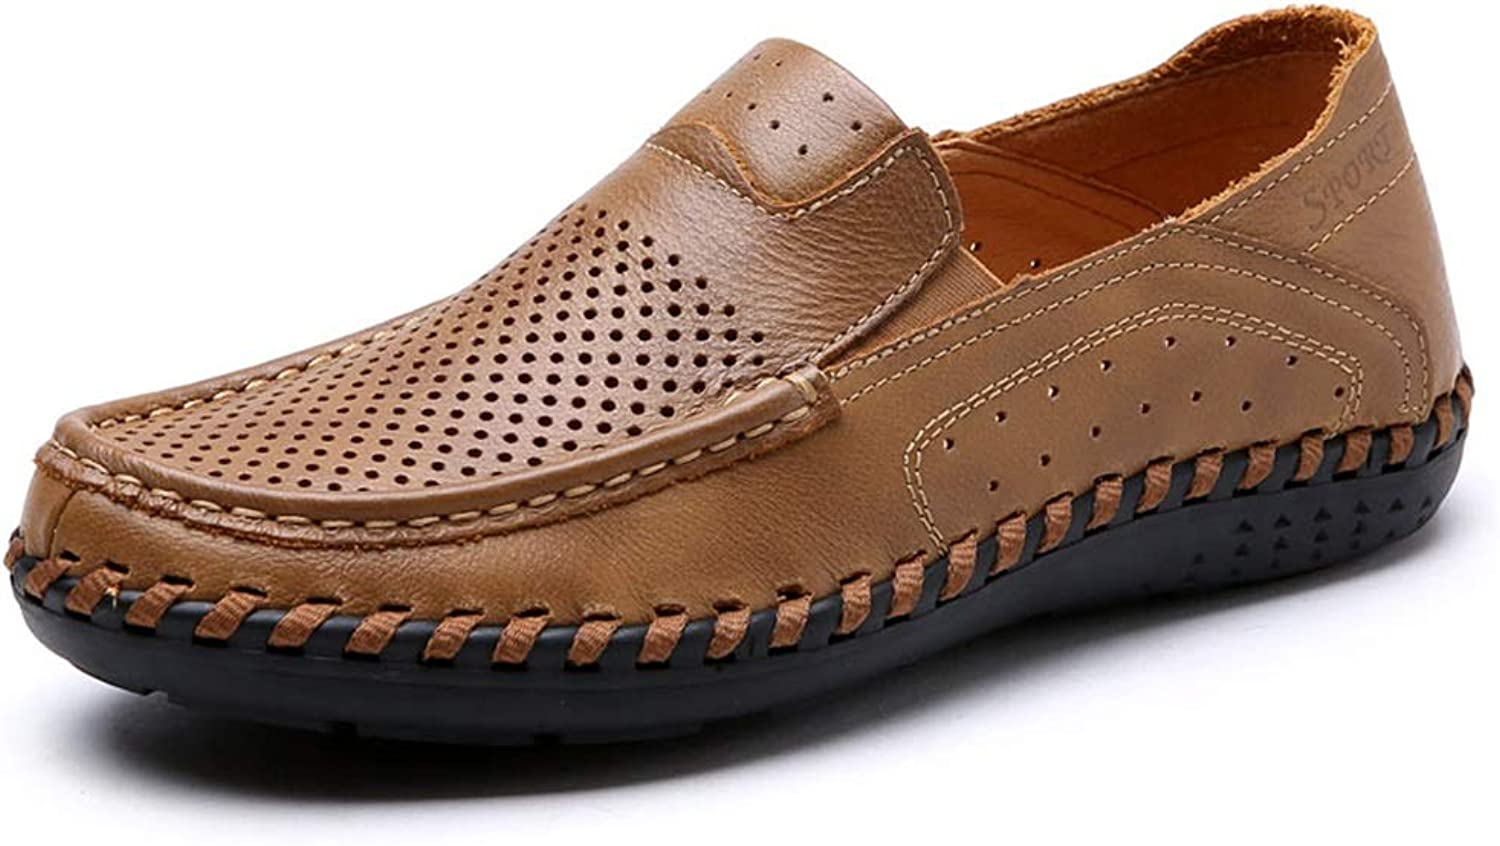 Oxford shoes Compatible Men Formal shoes Slip On Style OX Leather Hand Drawing Hollow(Lace Up Optional) (color   Slip on Light Brown, Size   5.5 UK)